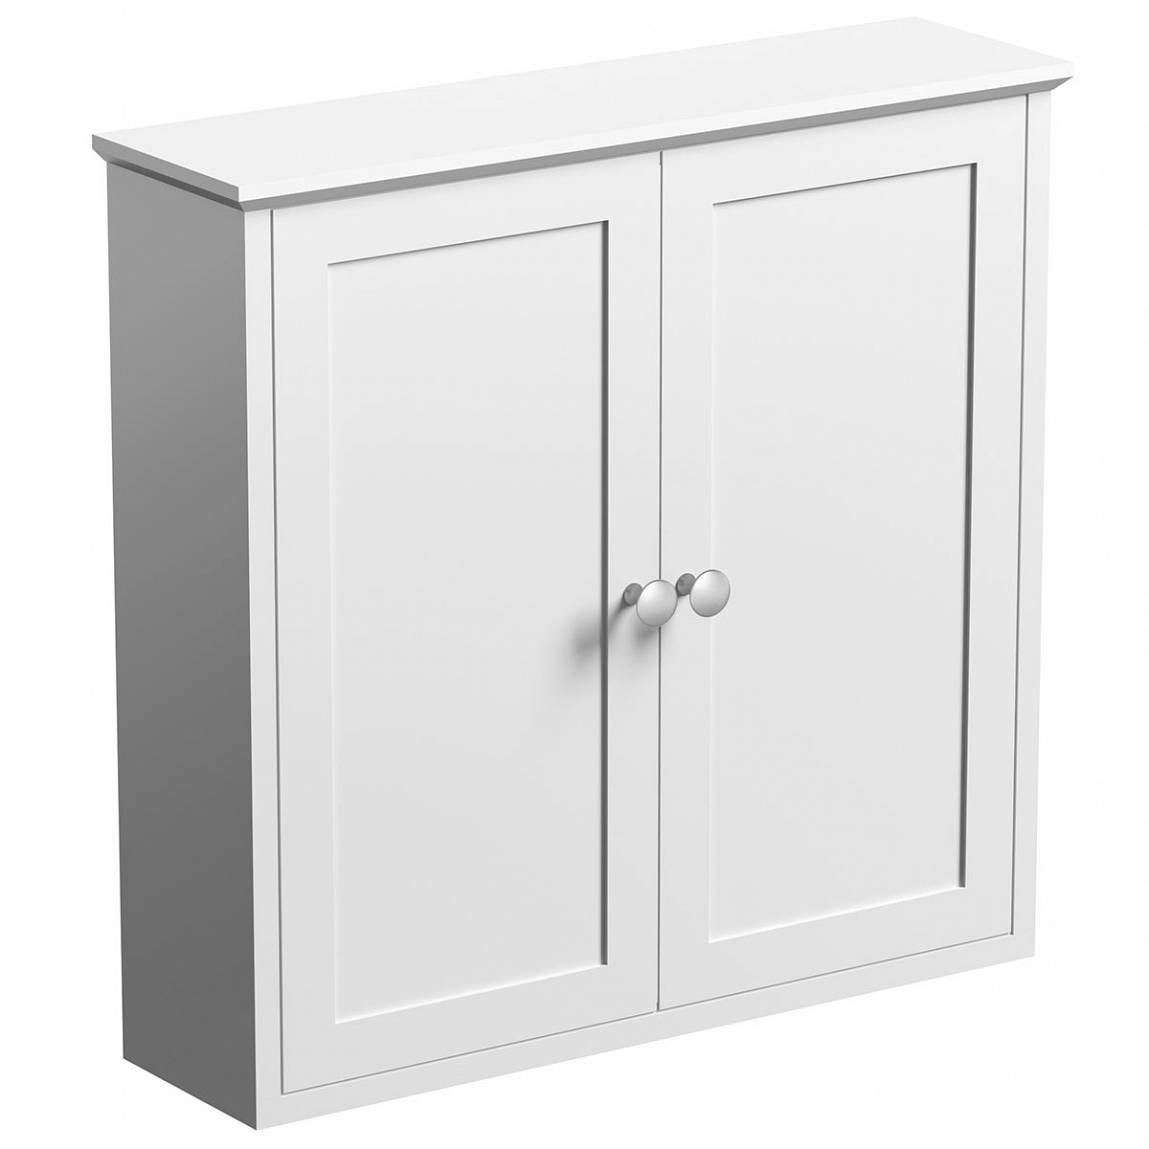 Camberley white wall mounted cabinet wall mounted - Wall mounted bathroom storage units ...